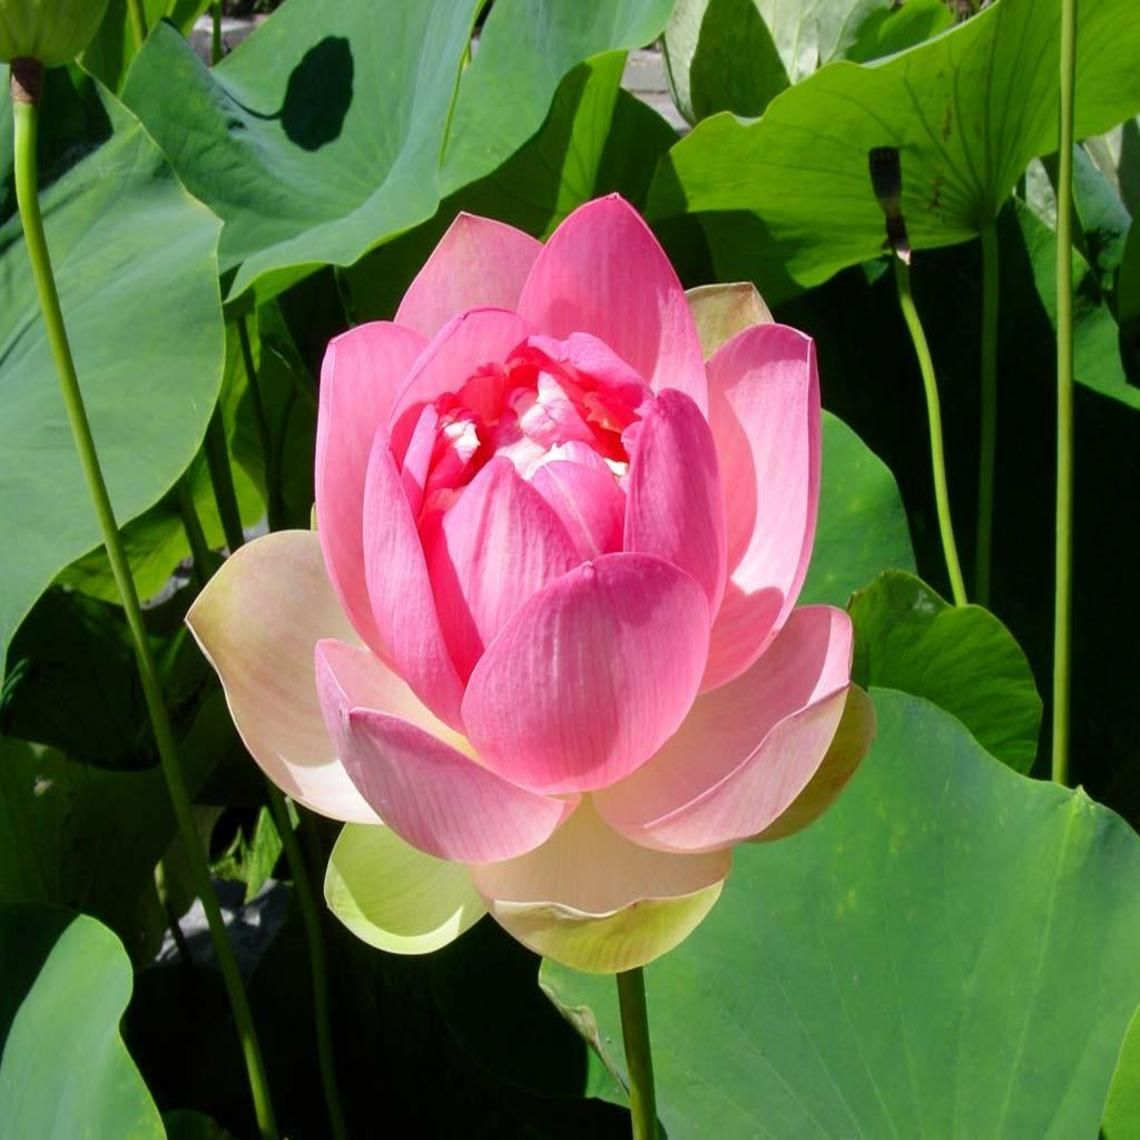 Lotus Flower Wallpaper Pinterest Lotus Flower And Rock